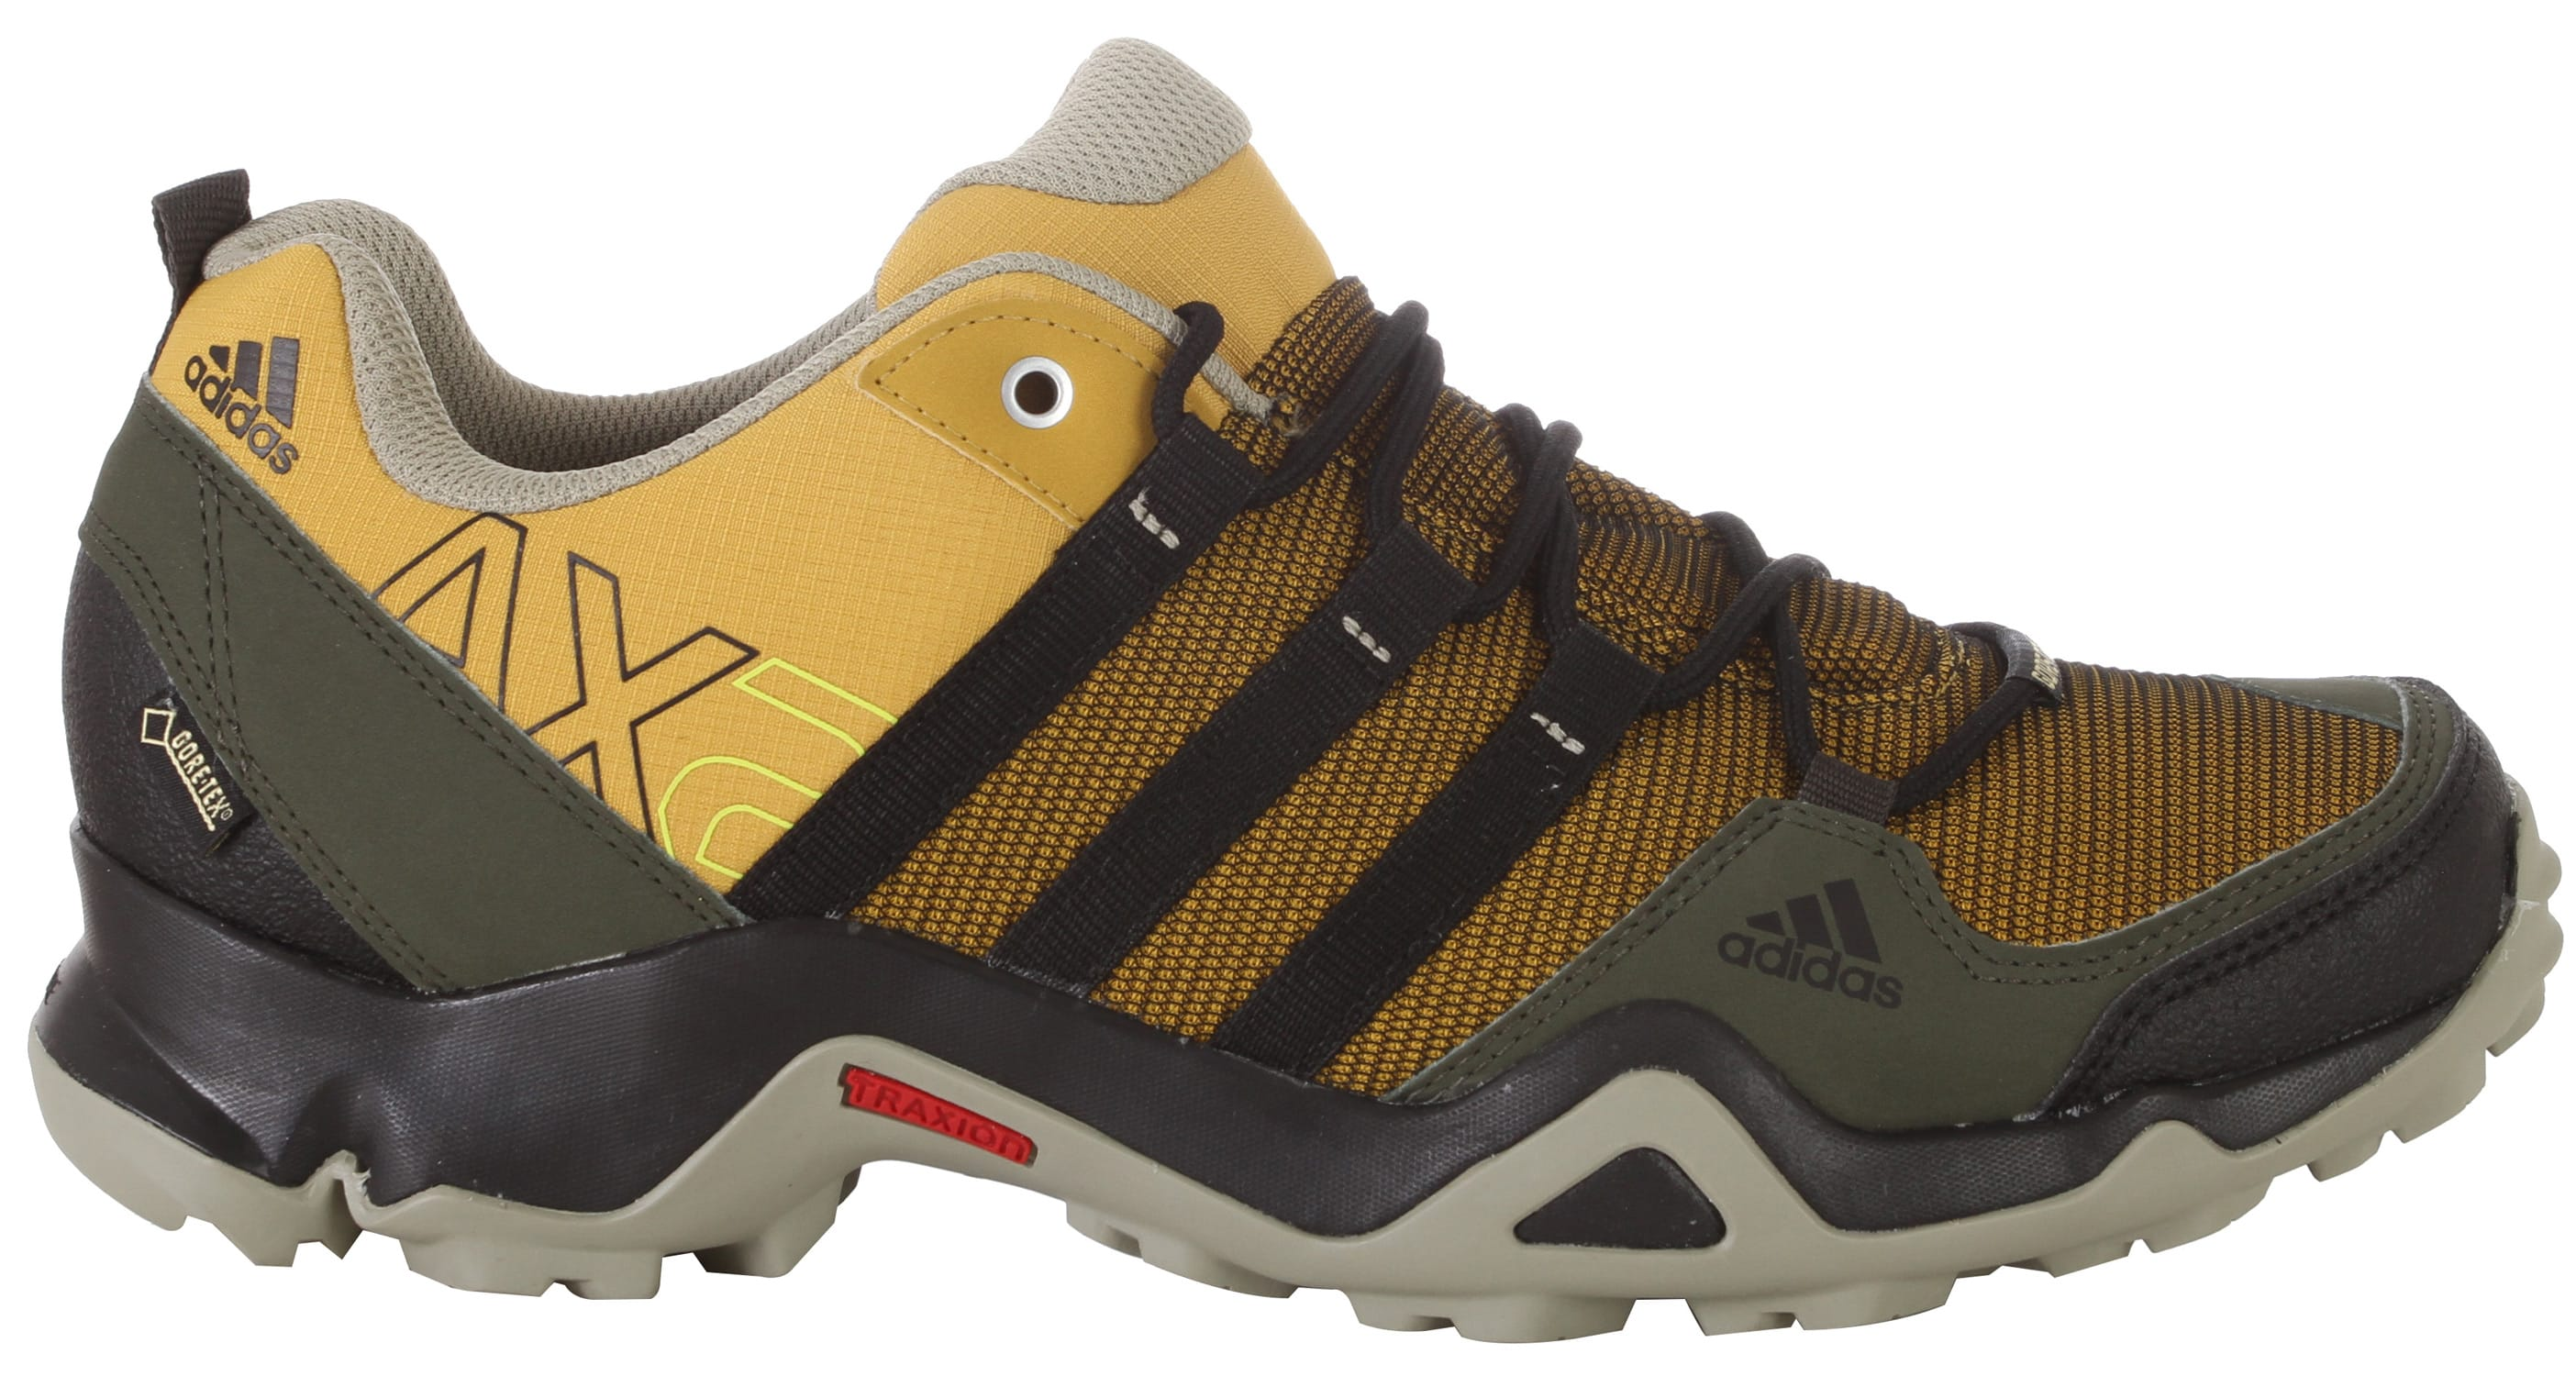 new arrival 8d720 3918a Adidas AX2 GTX Hiking Shoes - thumbnail 1